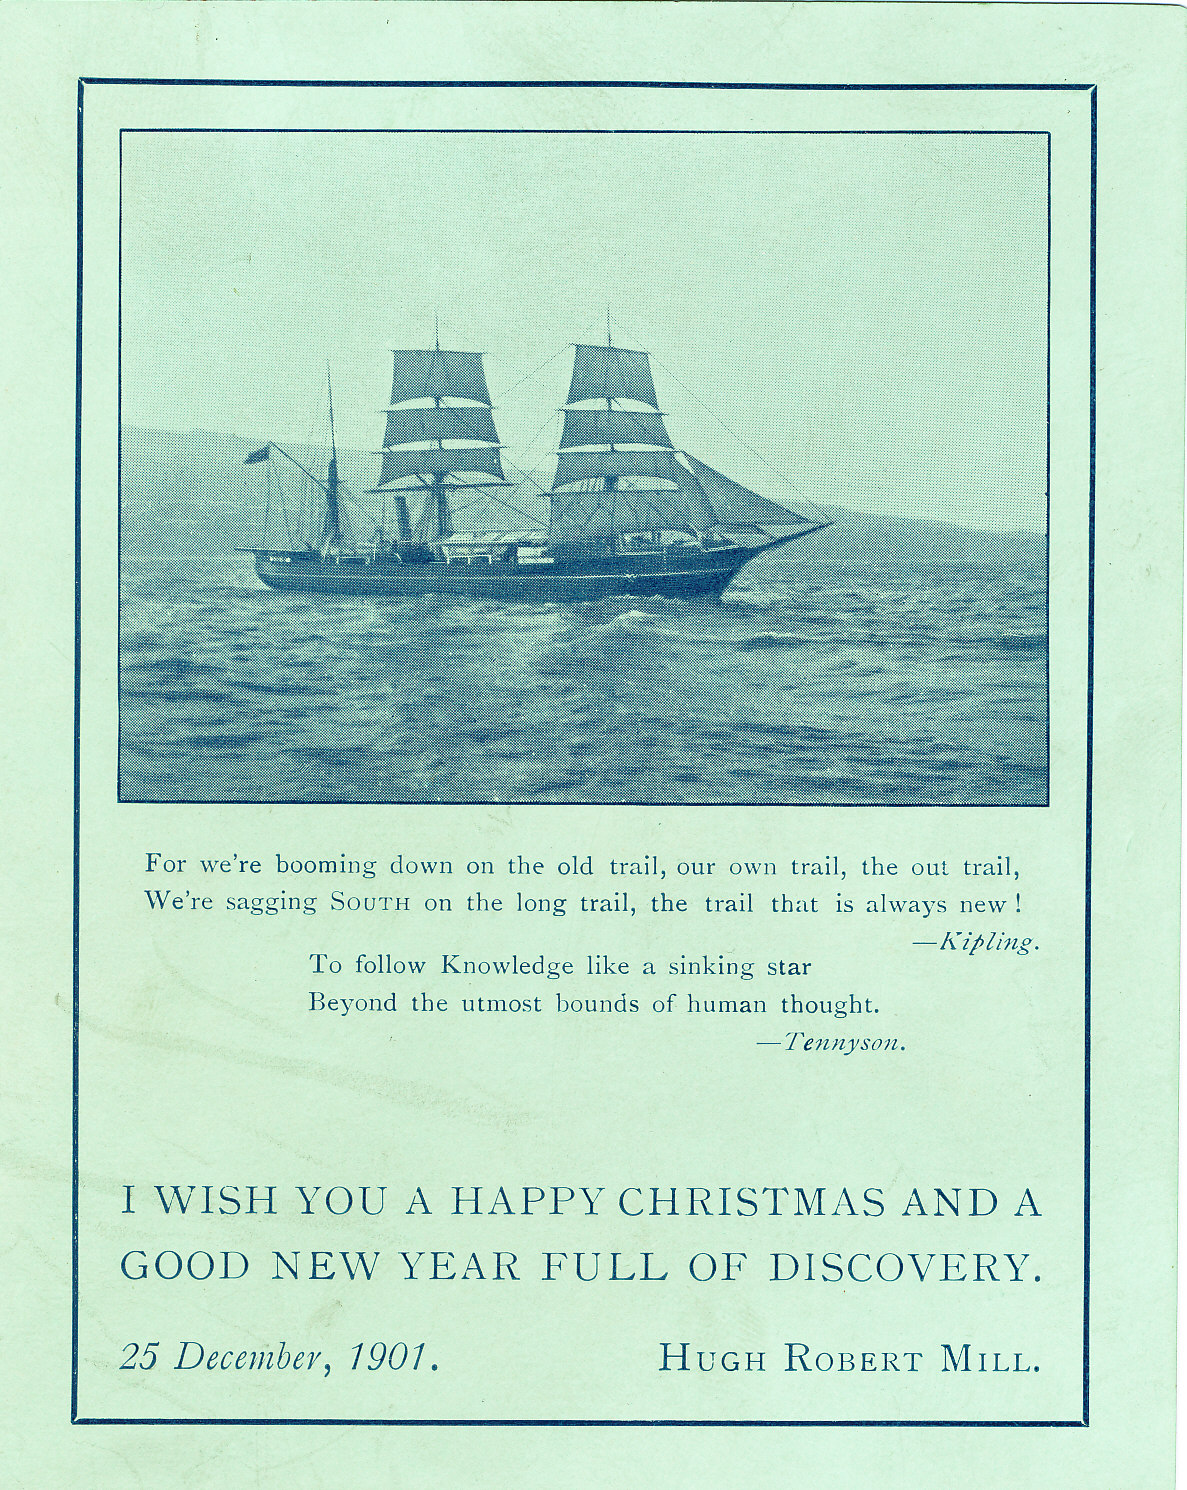 Christmas card showing Discovery under sail image